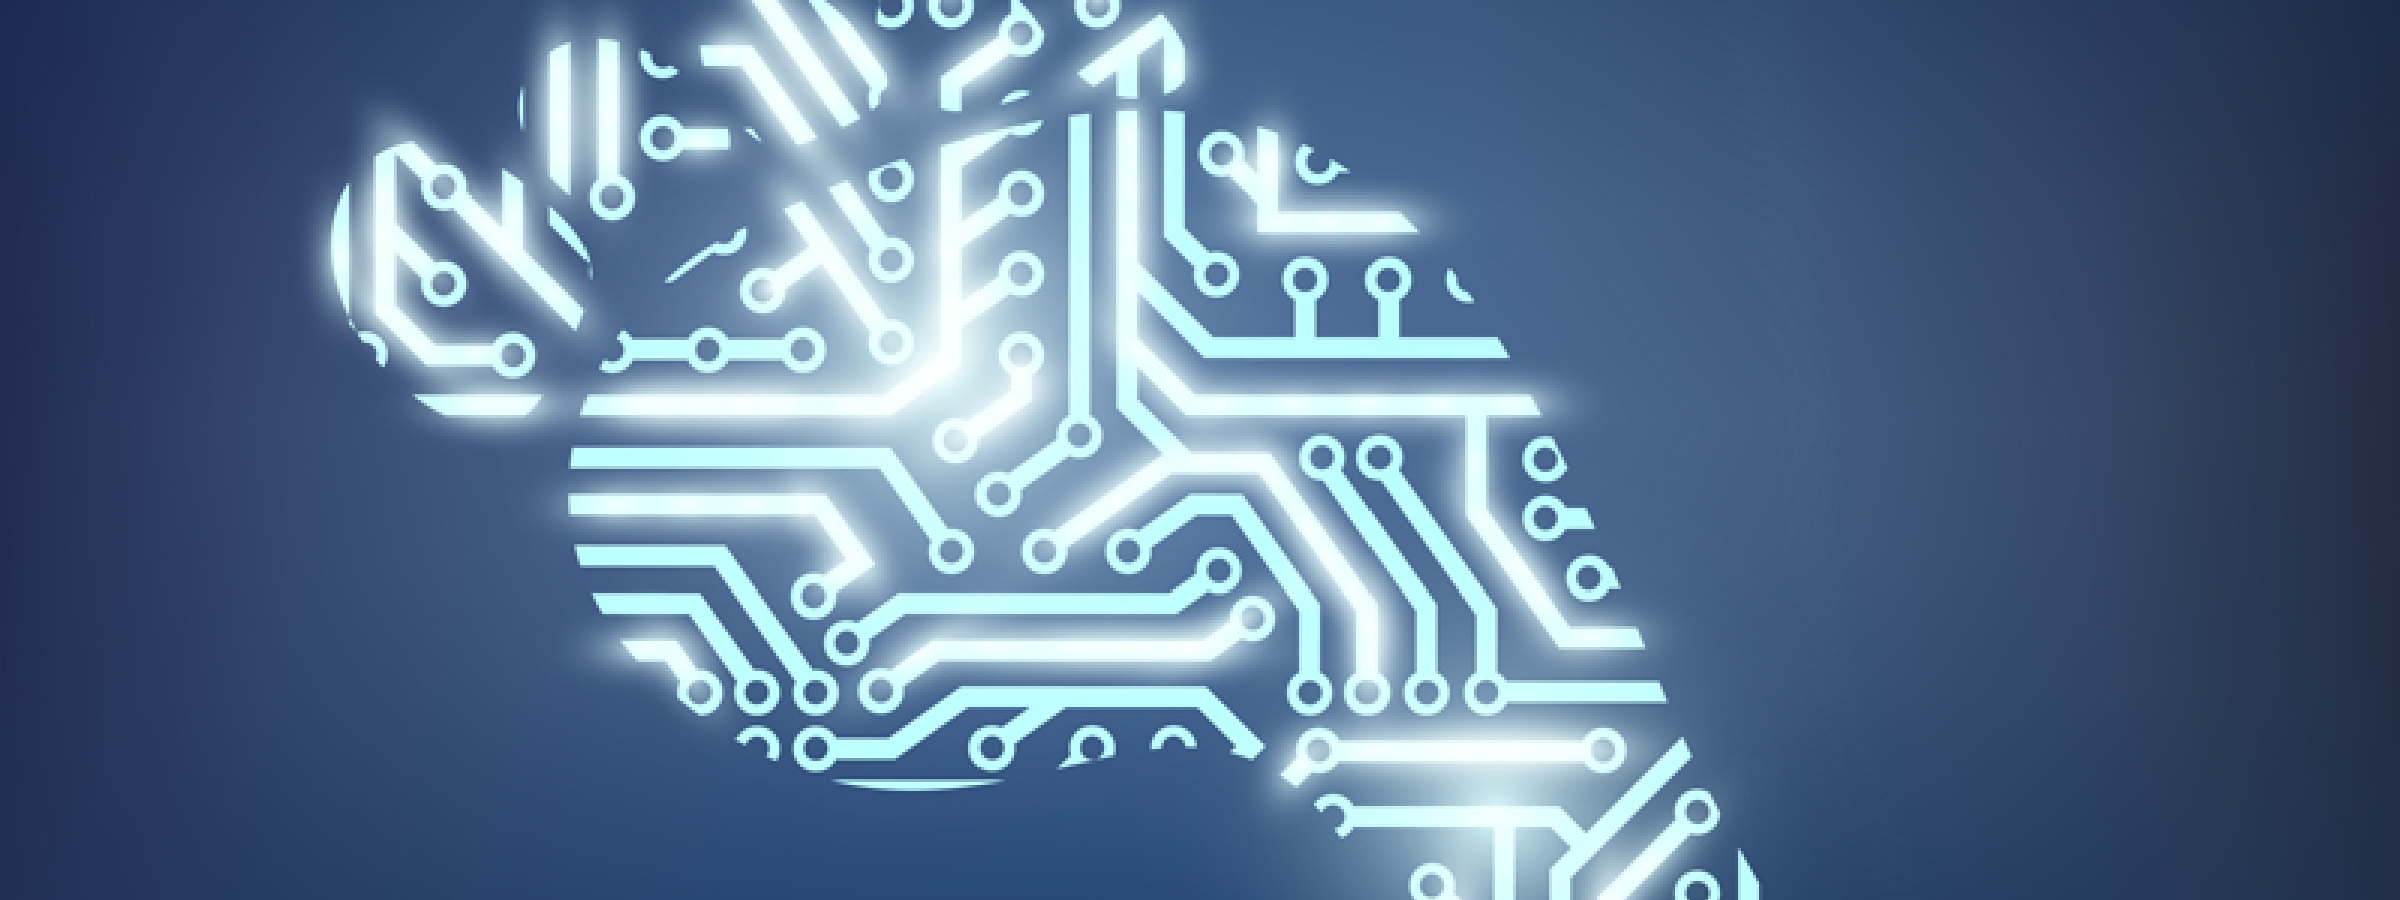 Digital Footprints Are Managed for Better Insight